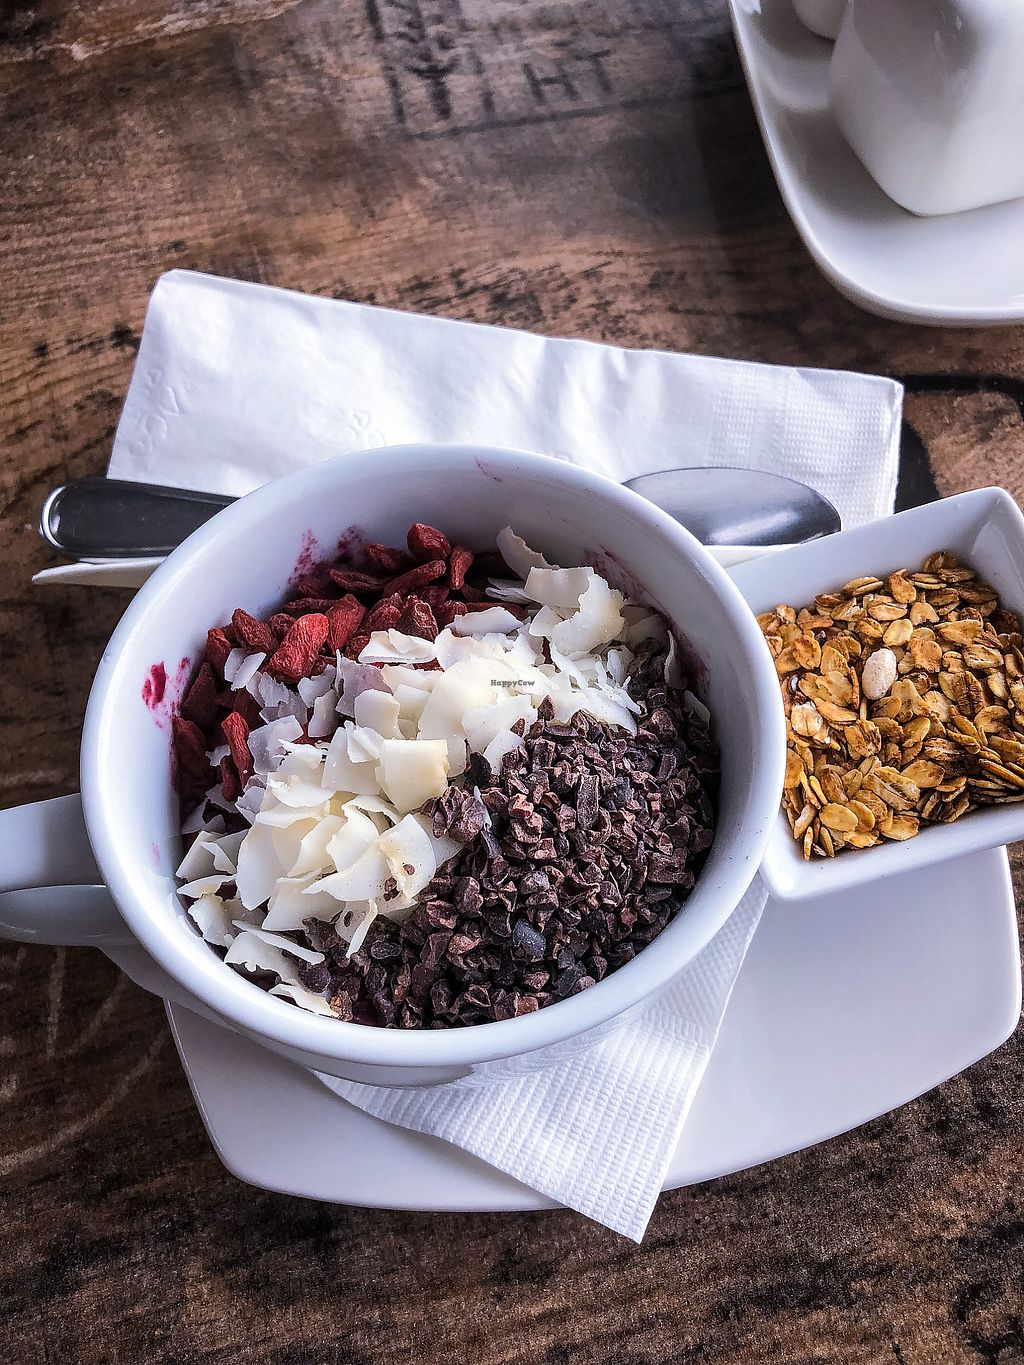 """Photo of Island Naturals Cafe  by <a href=""""/members/profile/emiliepix"""">emiliepix</a> <br/>Açaí bowl goodness! <br/> January 20, 2018  - <a href='/contact/abuse/image/44322/348954'>Report</a>"""